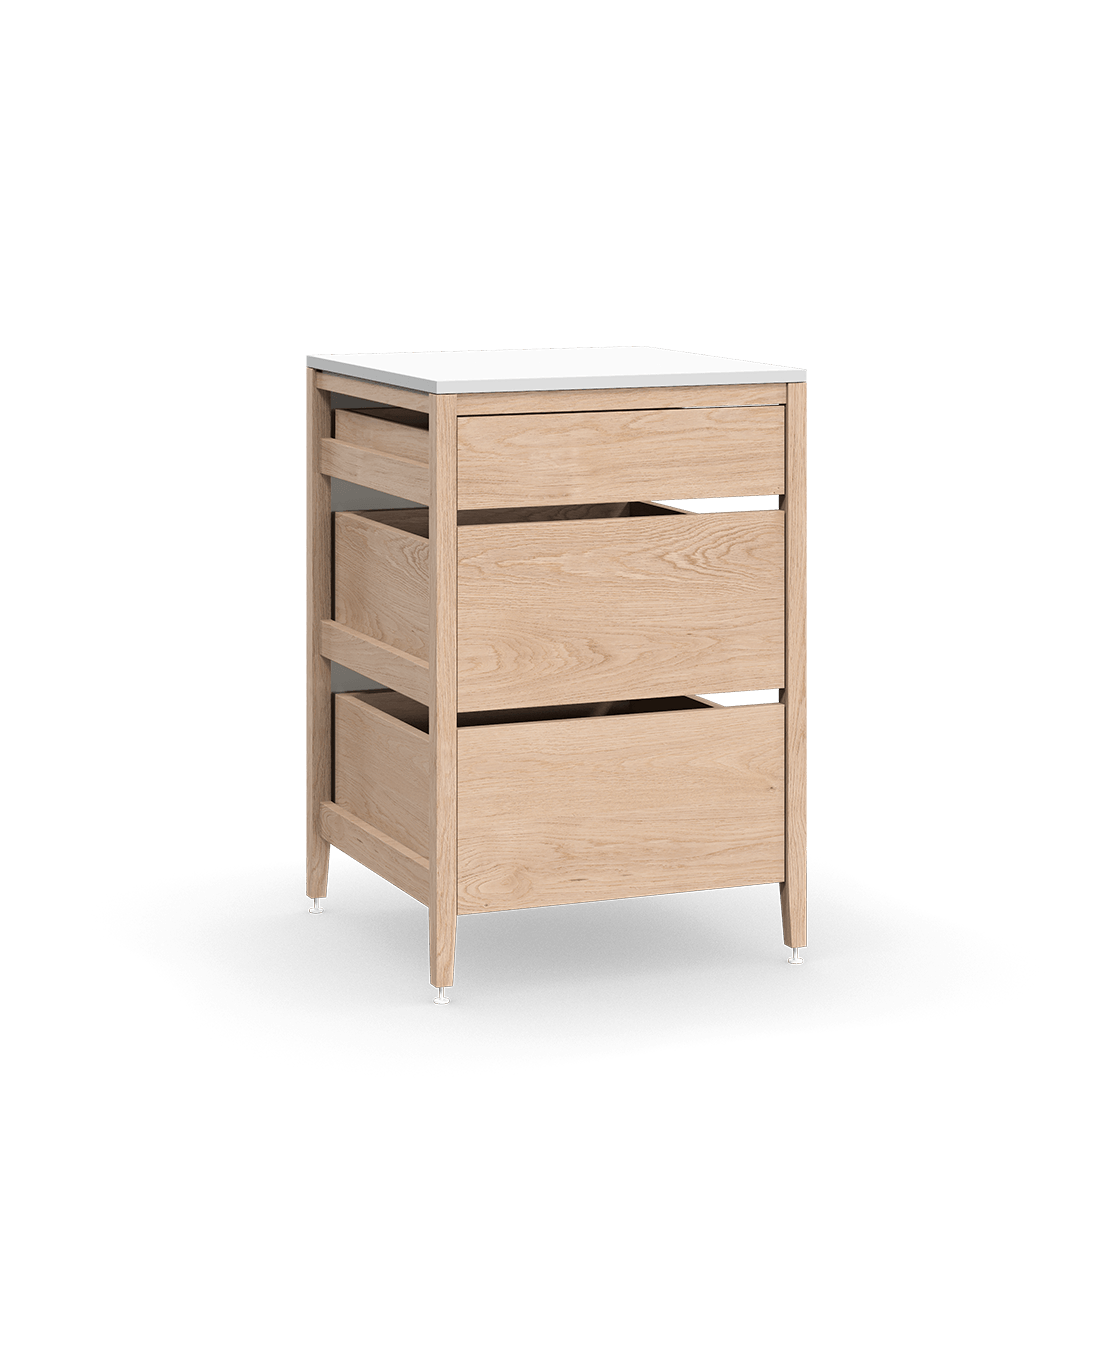 coquo radix white oak solid wood modular 3 drawers base kitchen cabinet 27 inch C1-C-27TB-3003-NA